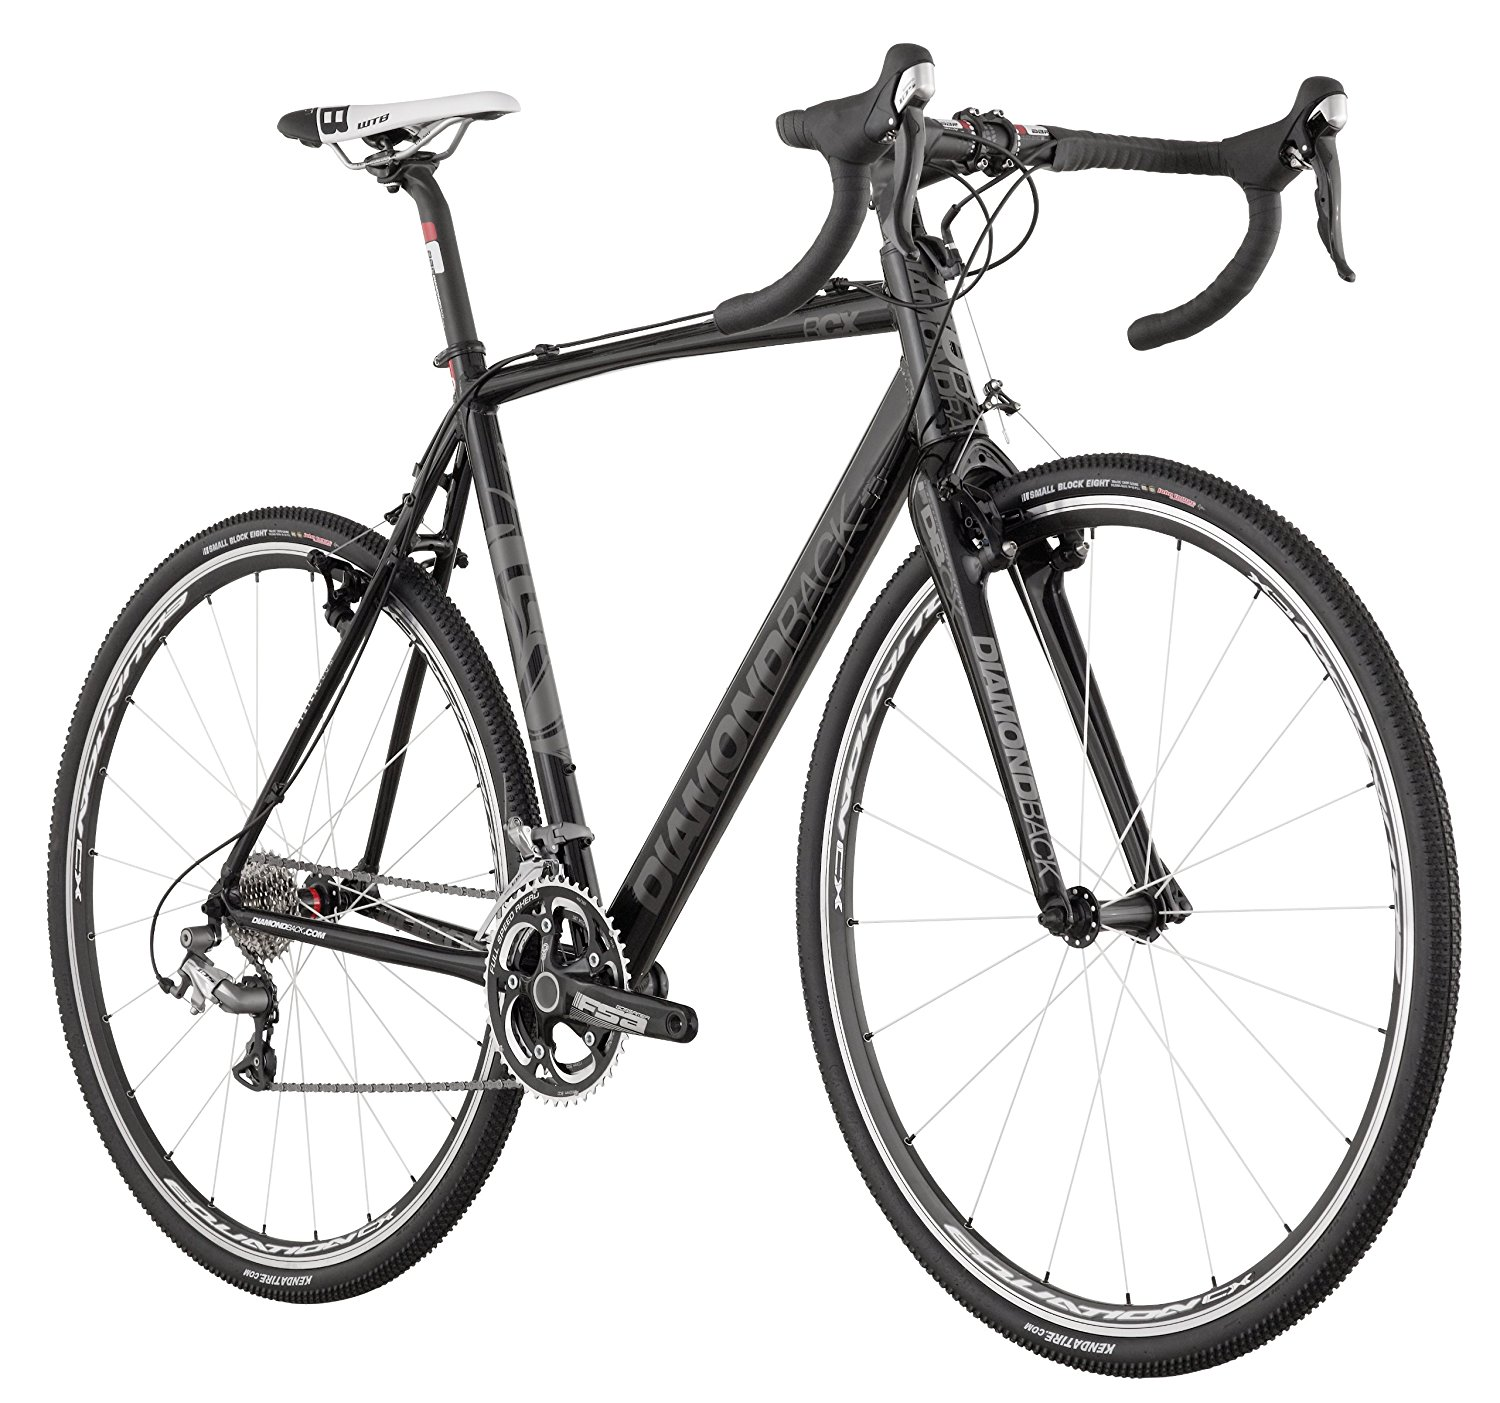 Best Road Bikes - Diamondback 2013 Steilacoom RCX